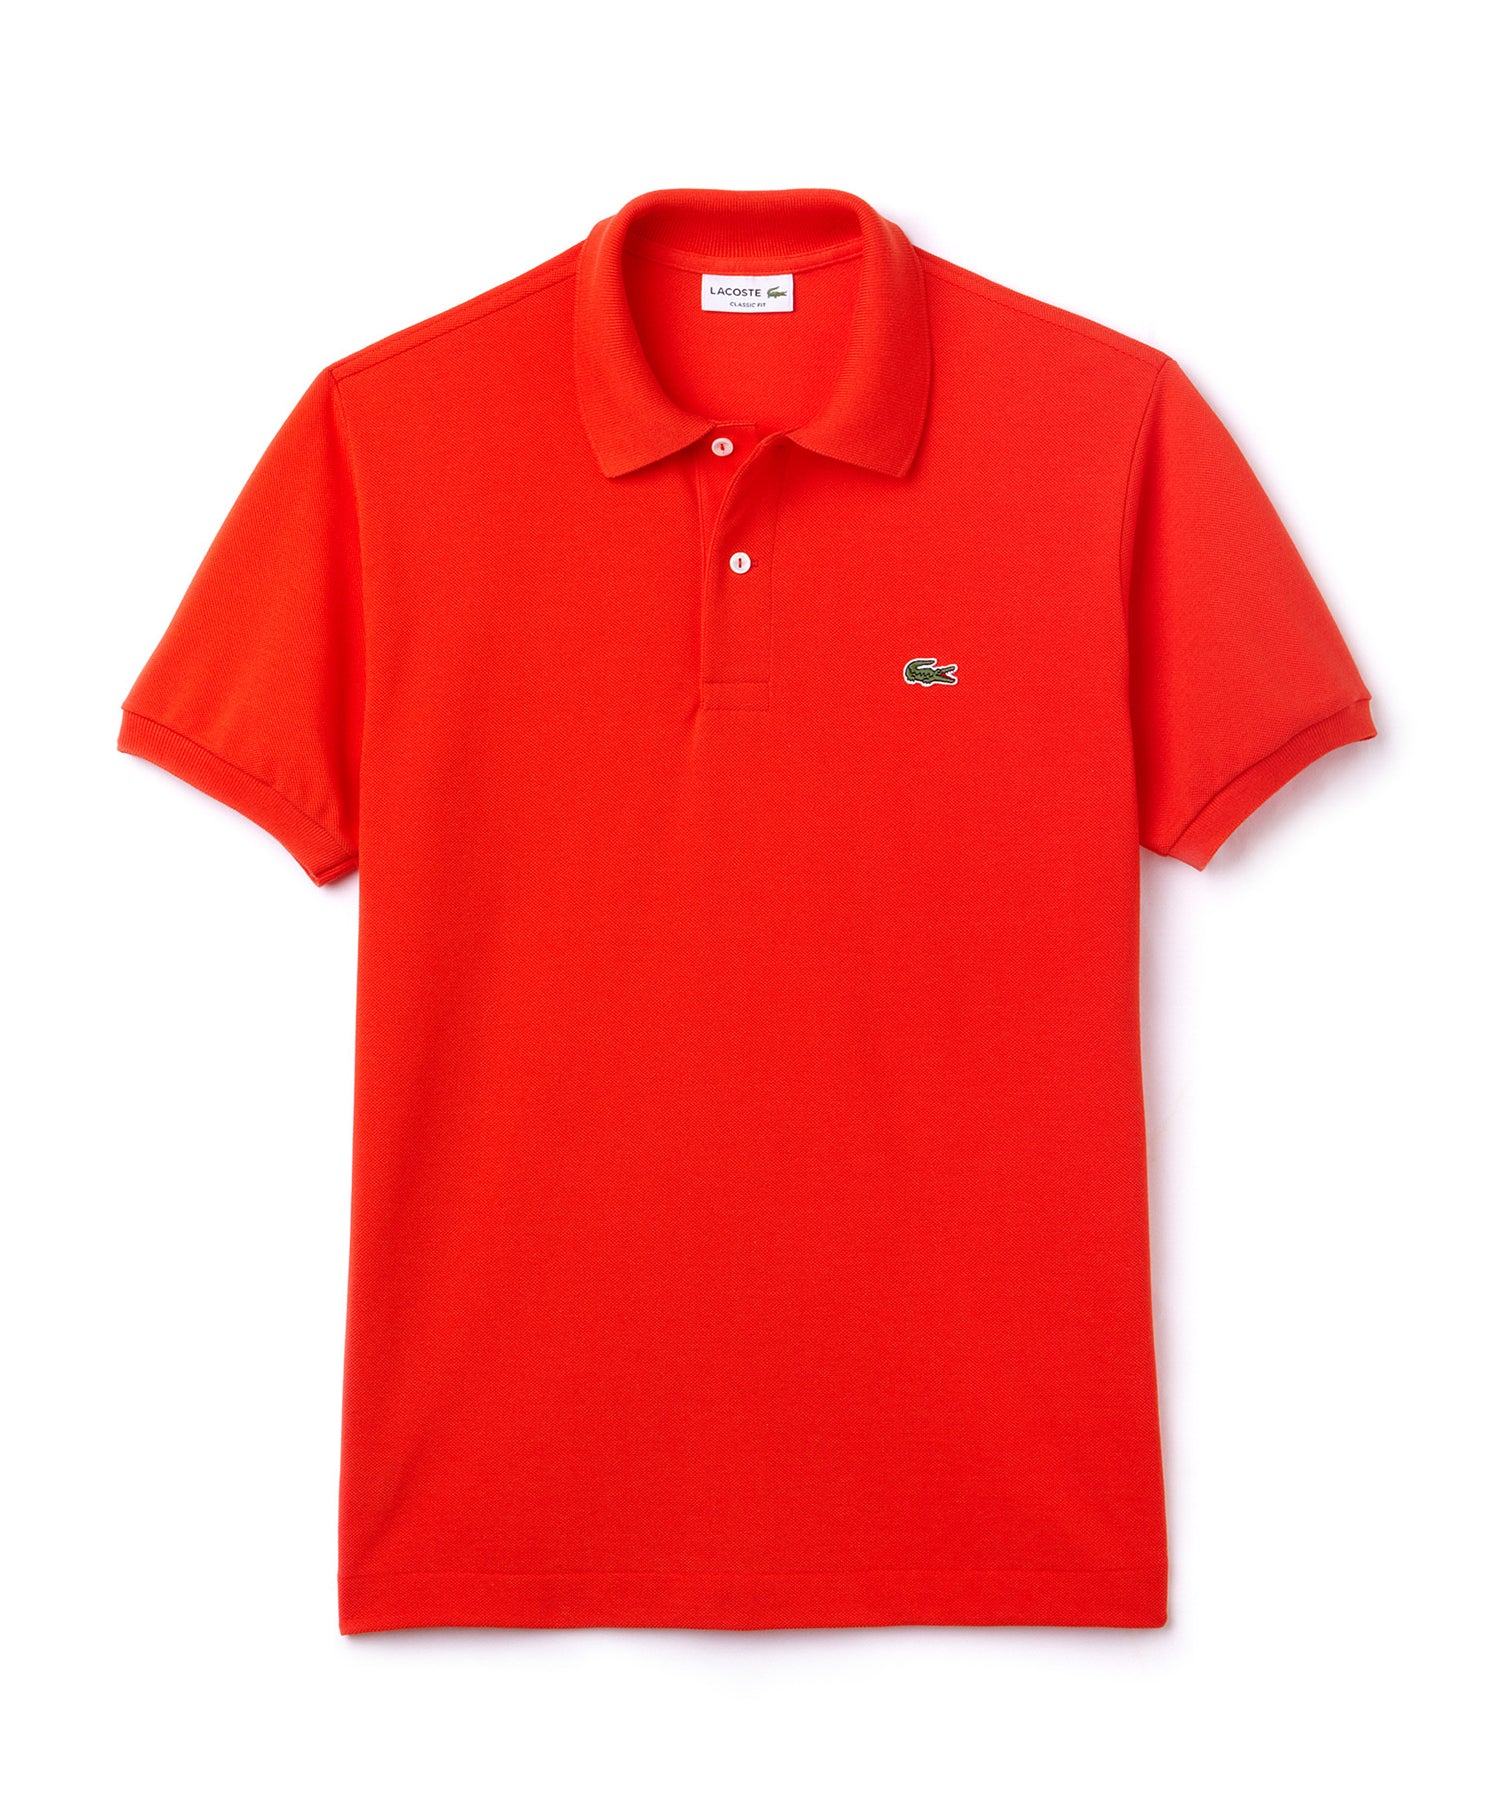 LACOSTE CLASSIC FIT POLO in Red